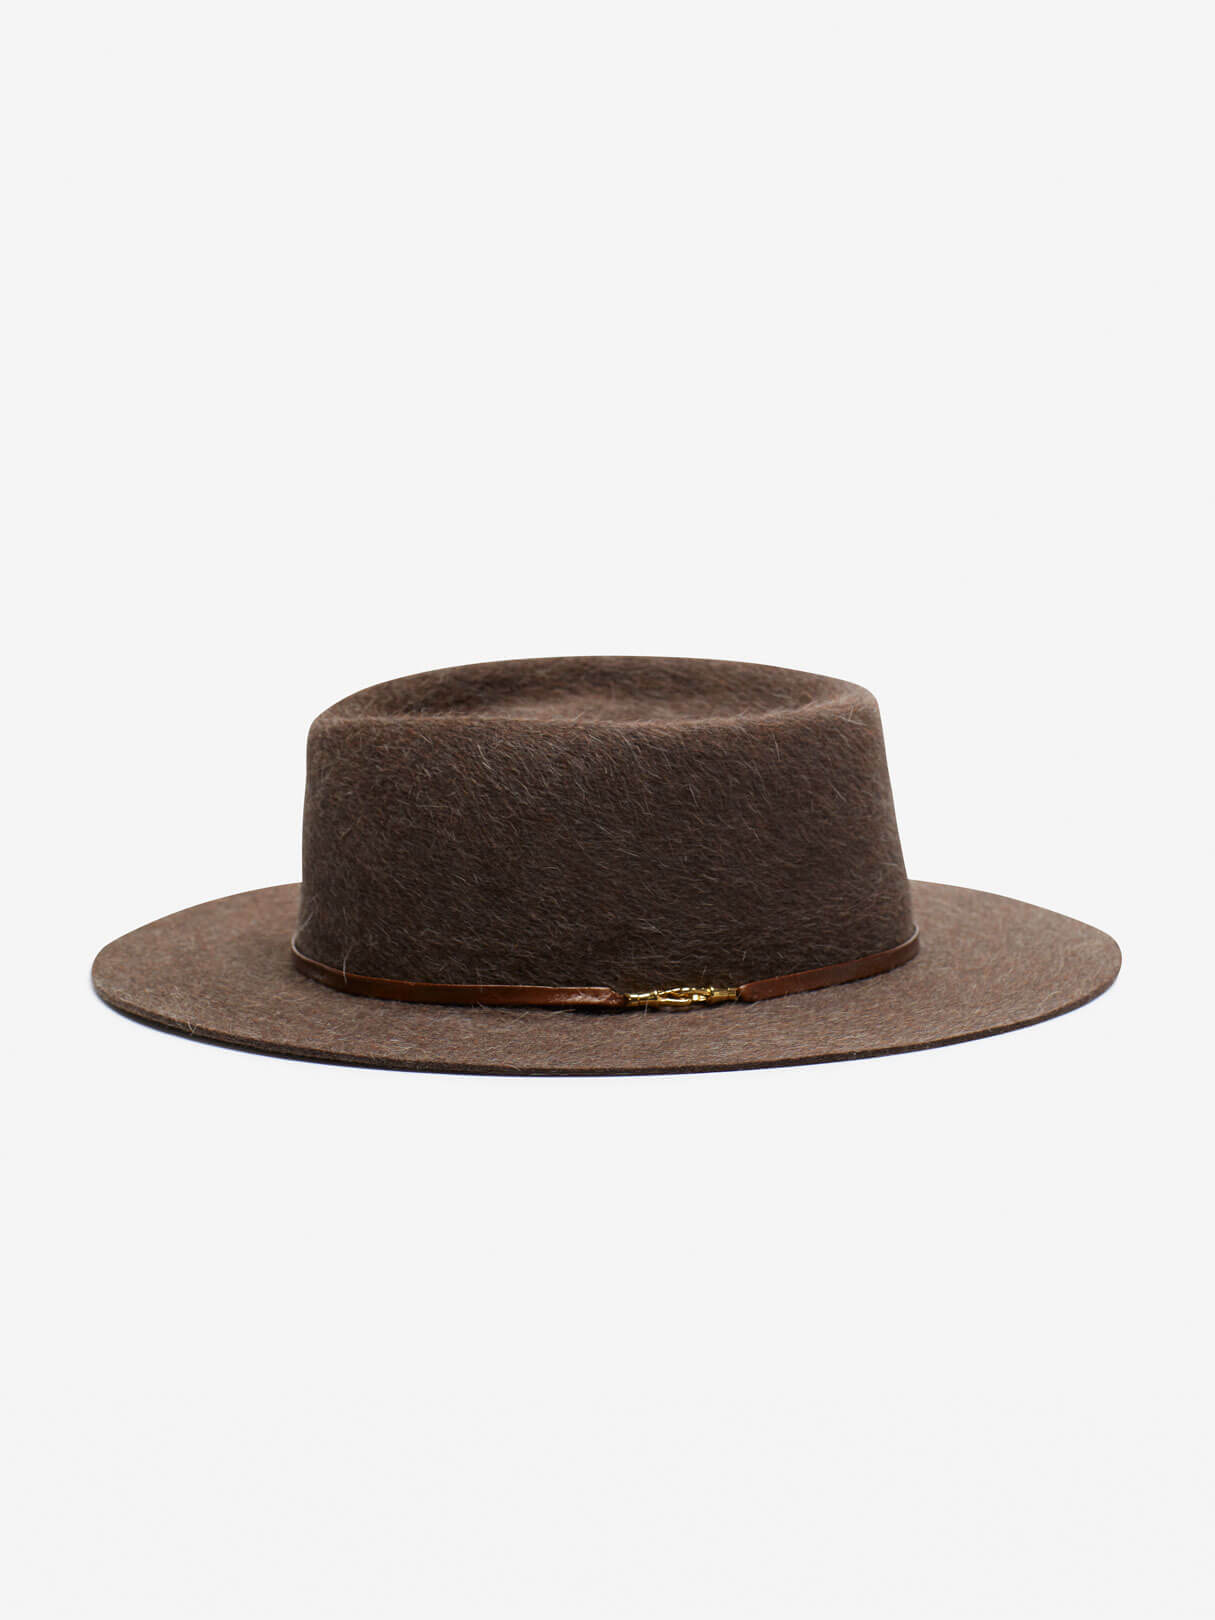 B.M. Franklin 'Hunter' Porkpie Hat Taupe